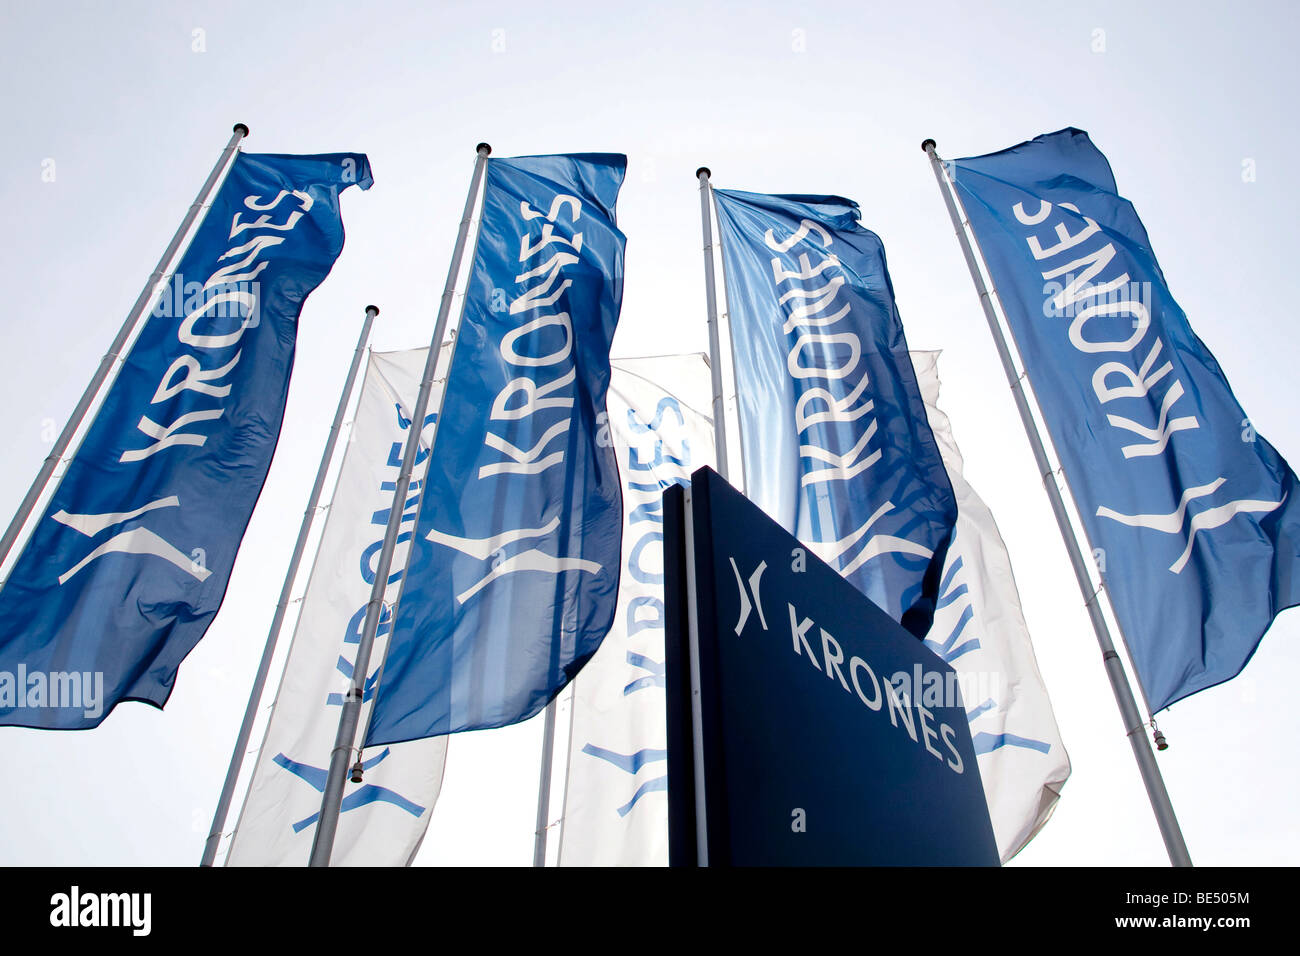 Flags with the logo of the Krones AG company in Neutraubling, Bavaria, Germany, Europe Stock Photo